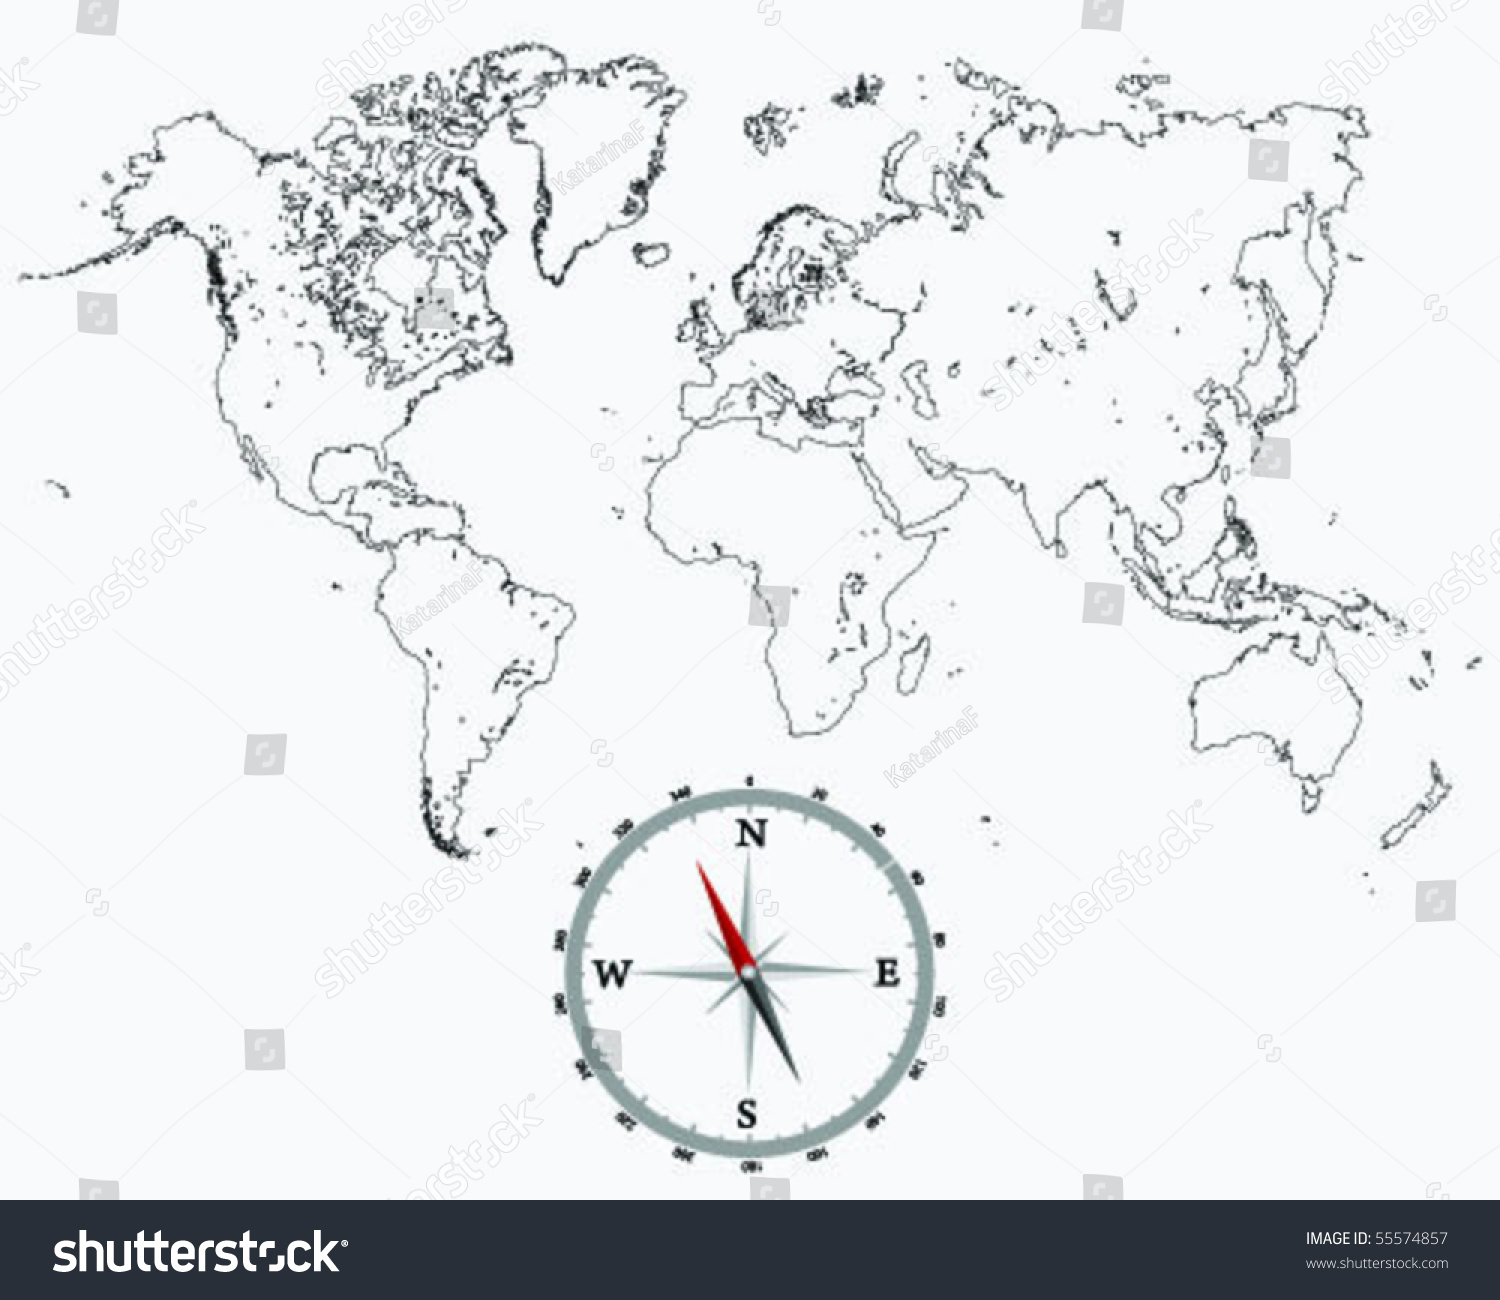 detailed world map outlines and compass stock vector illustration 55574857   shutterstock